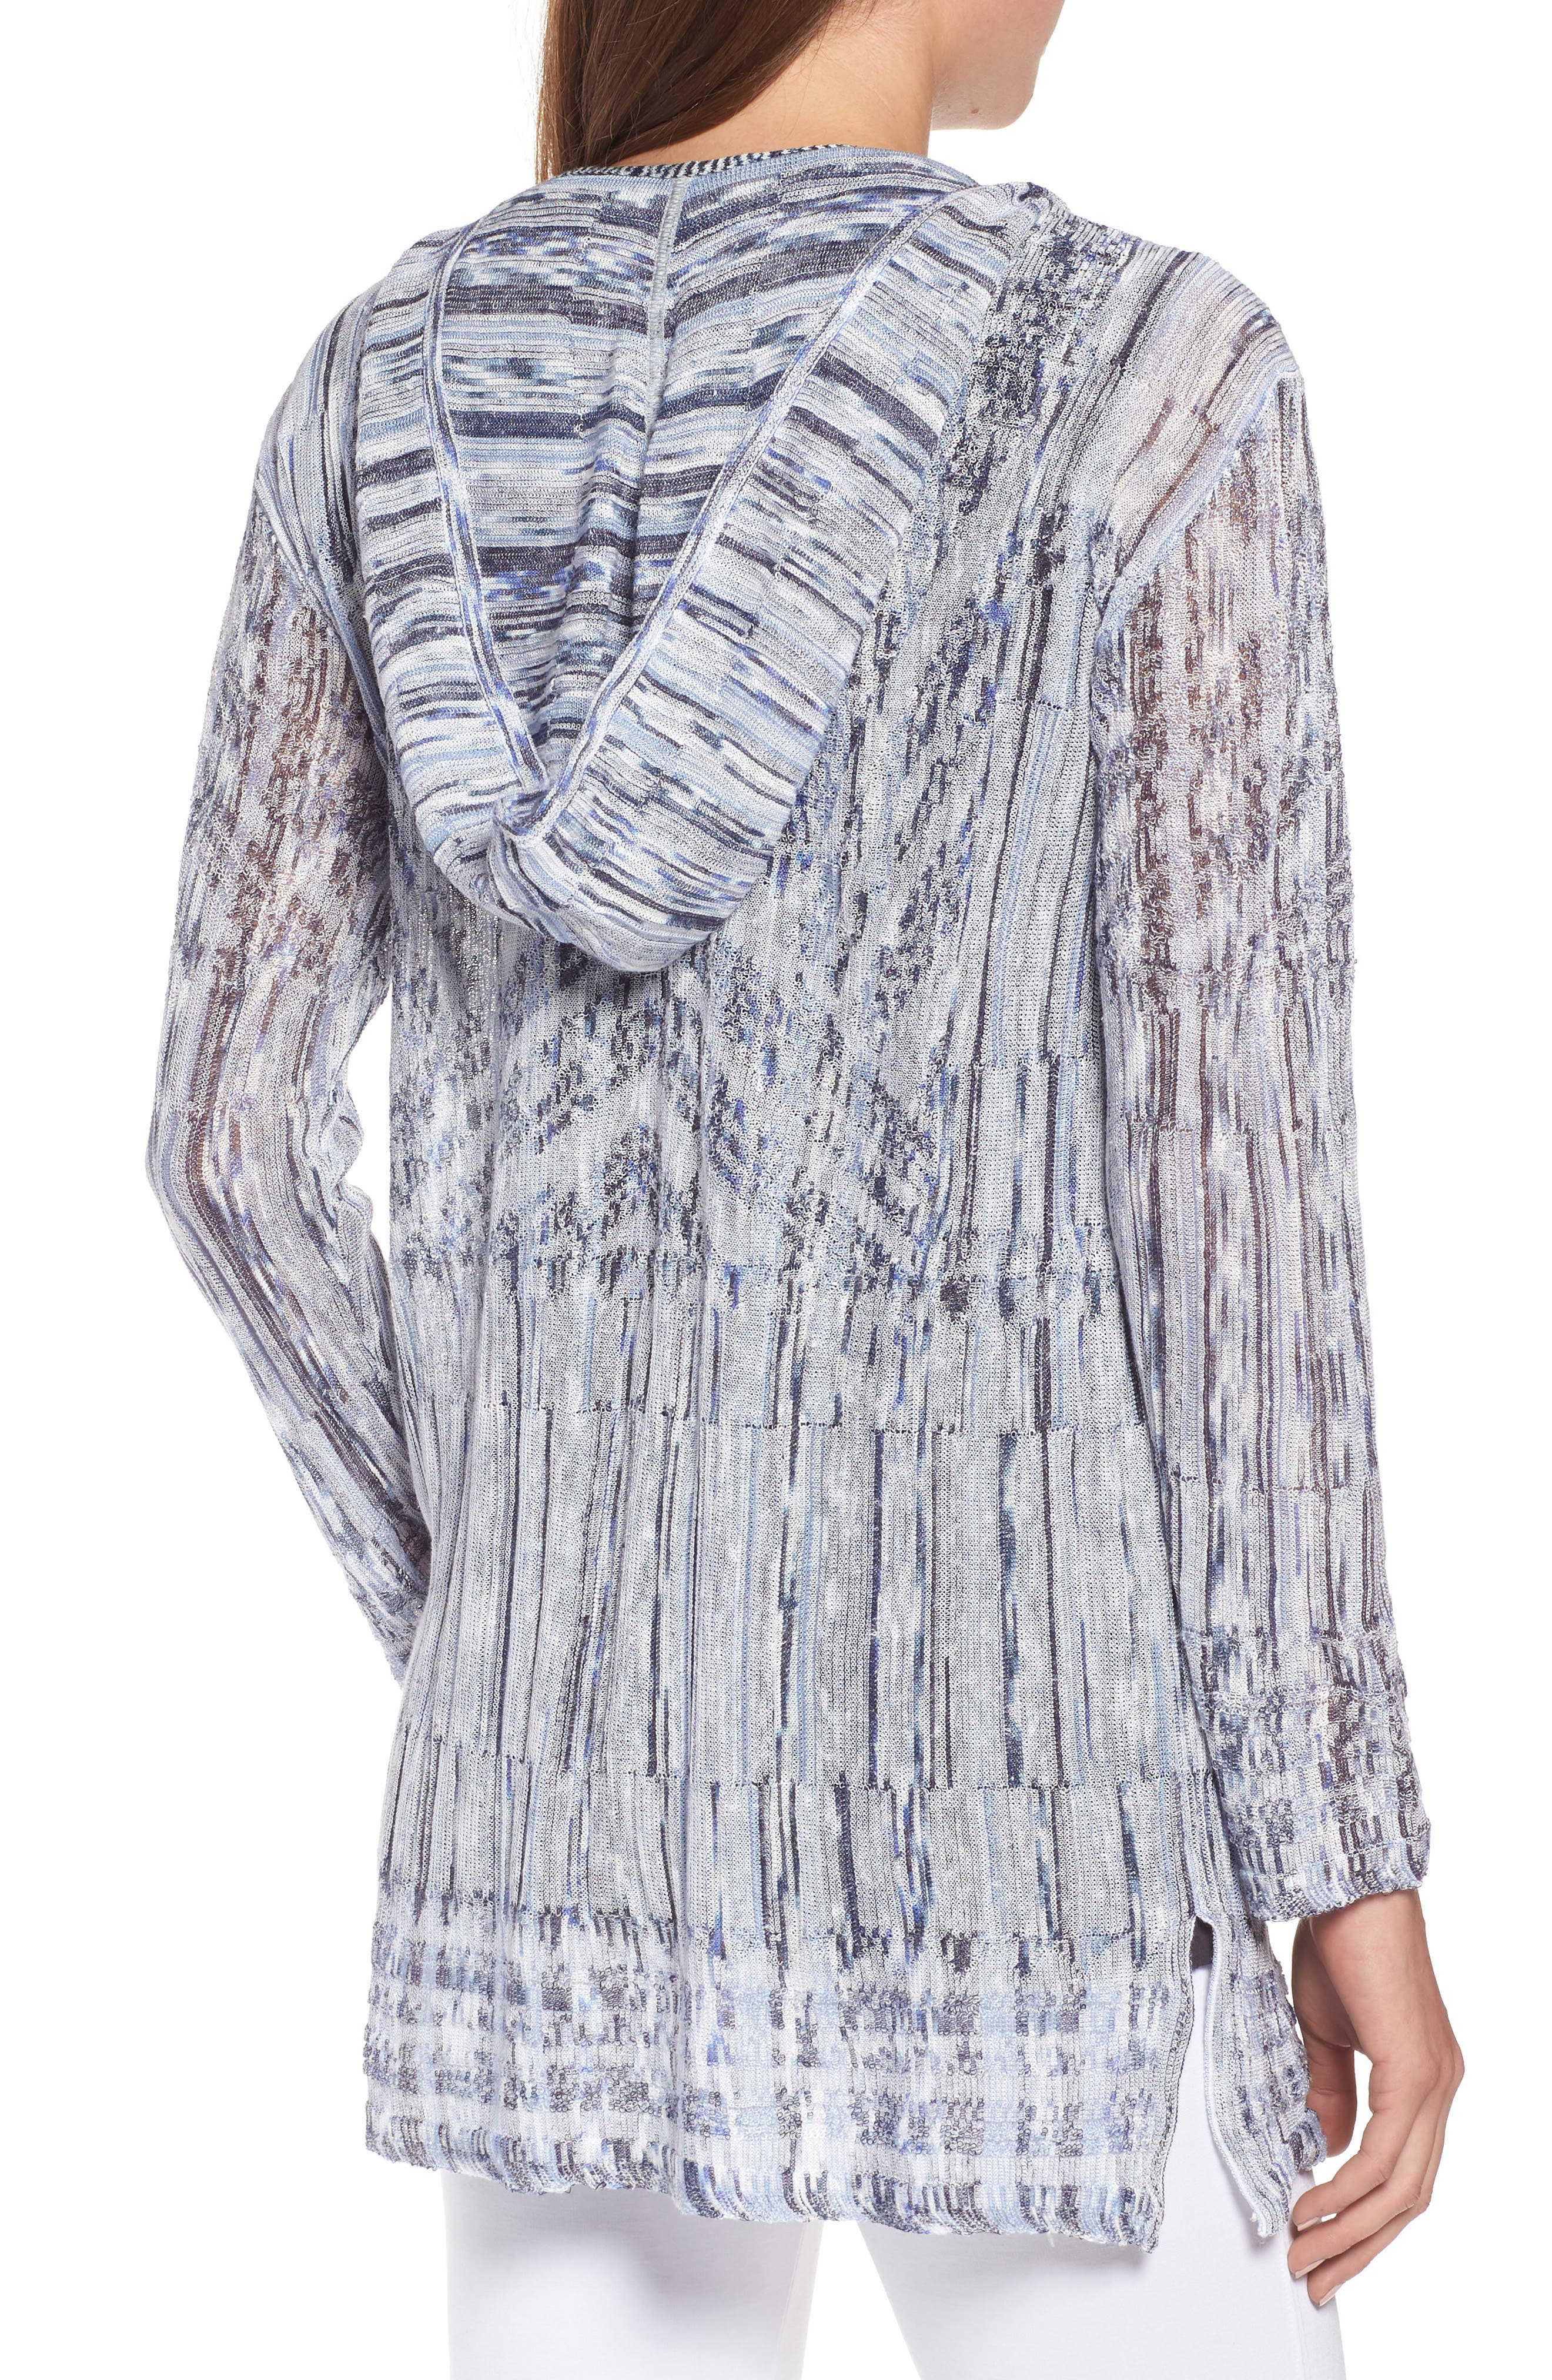 New Frontier Hooded Cardigan,                             Alternate thumbnail 2, color,                             Multi